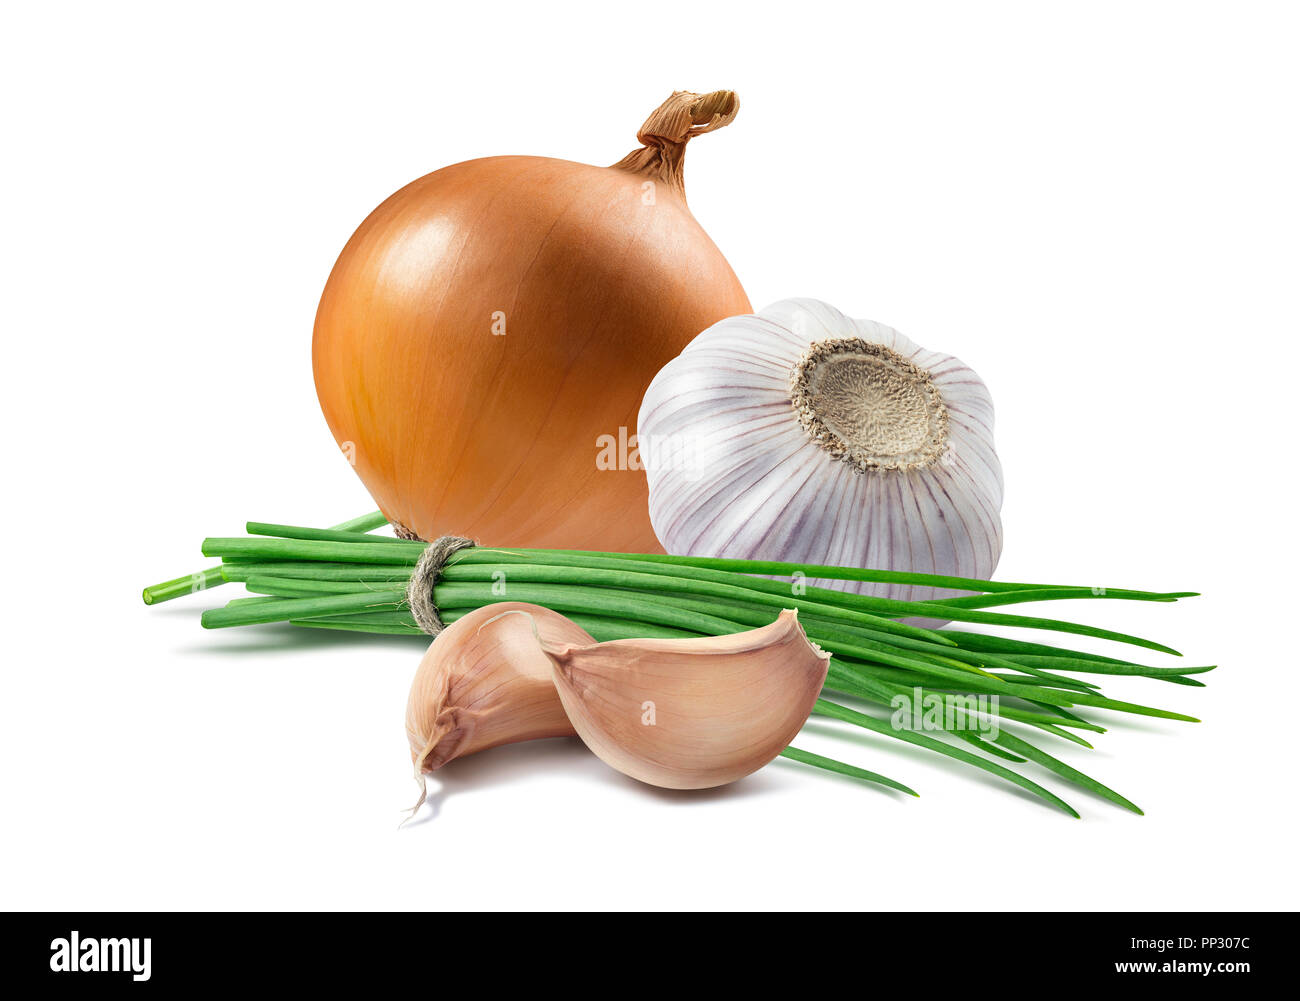 Yellow onion green scallion garlic isolated as package design element - Stock Image